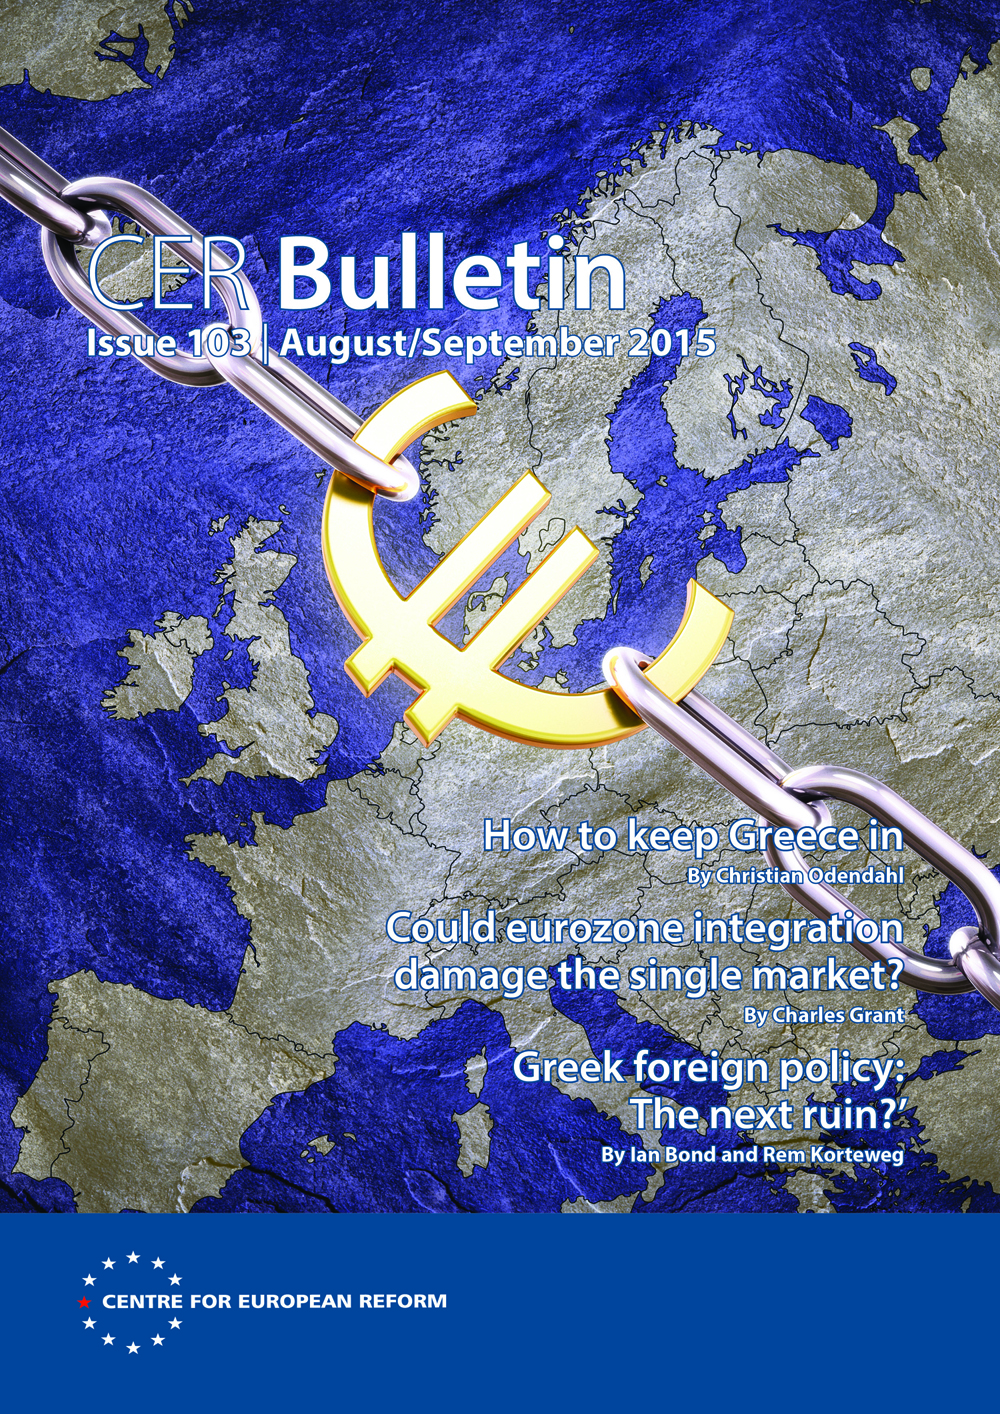 Bulletin issue 103 August/September 2015